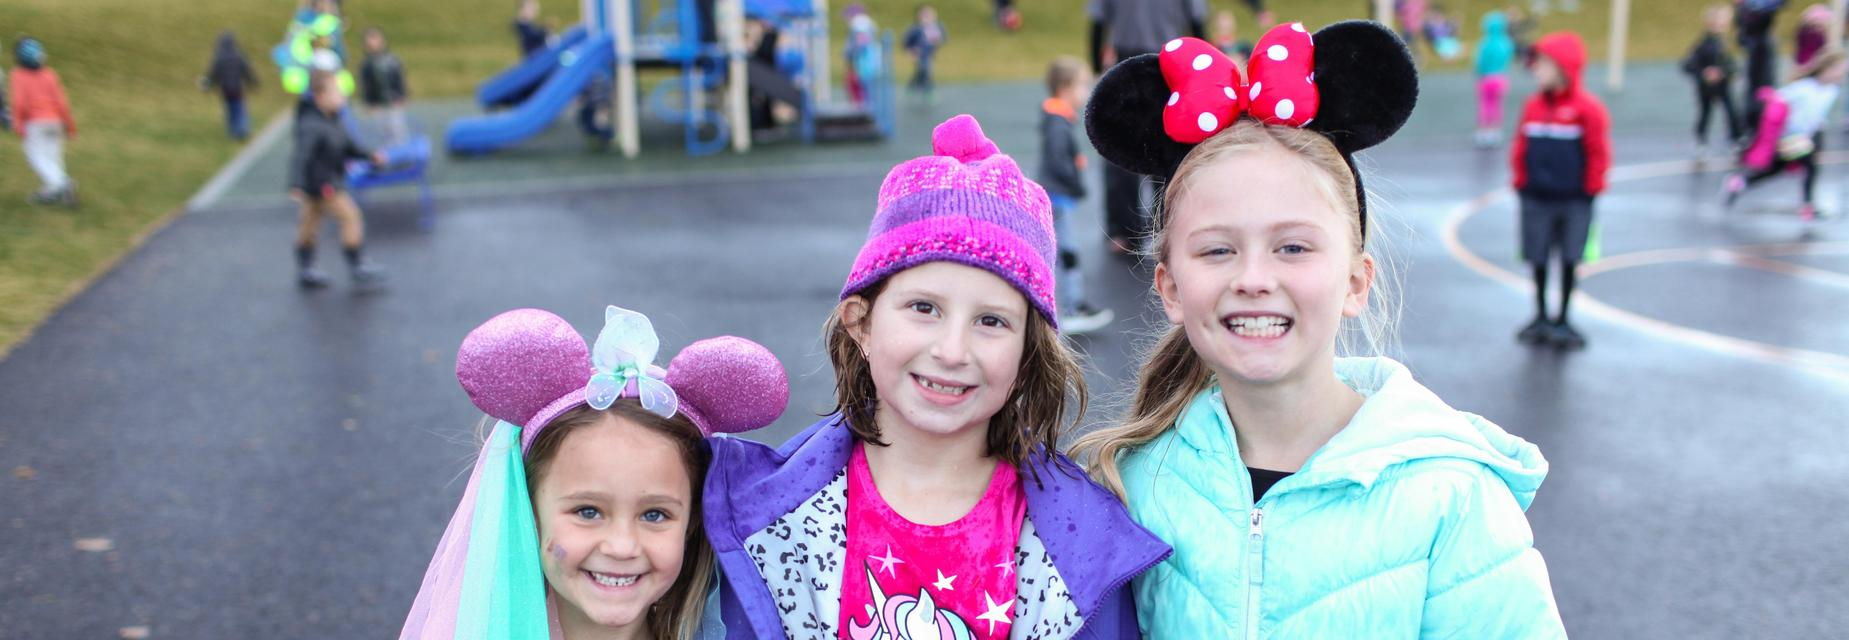 Hat day at Riverbend Elementary. Mickey mouse ears, pink hat, Minnie Mouse ears